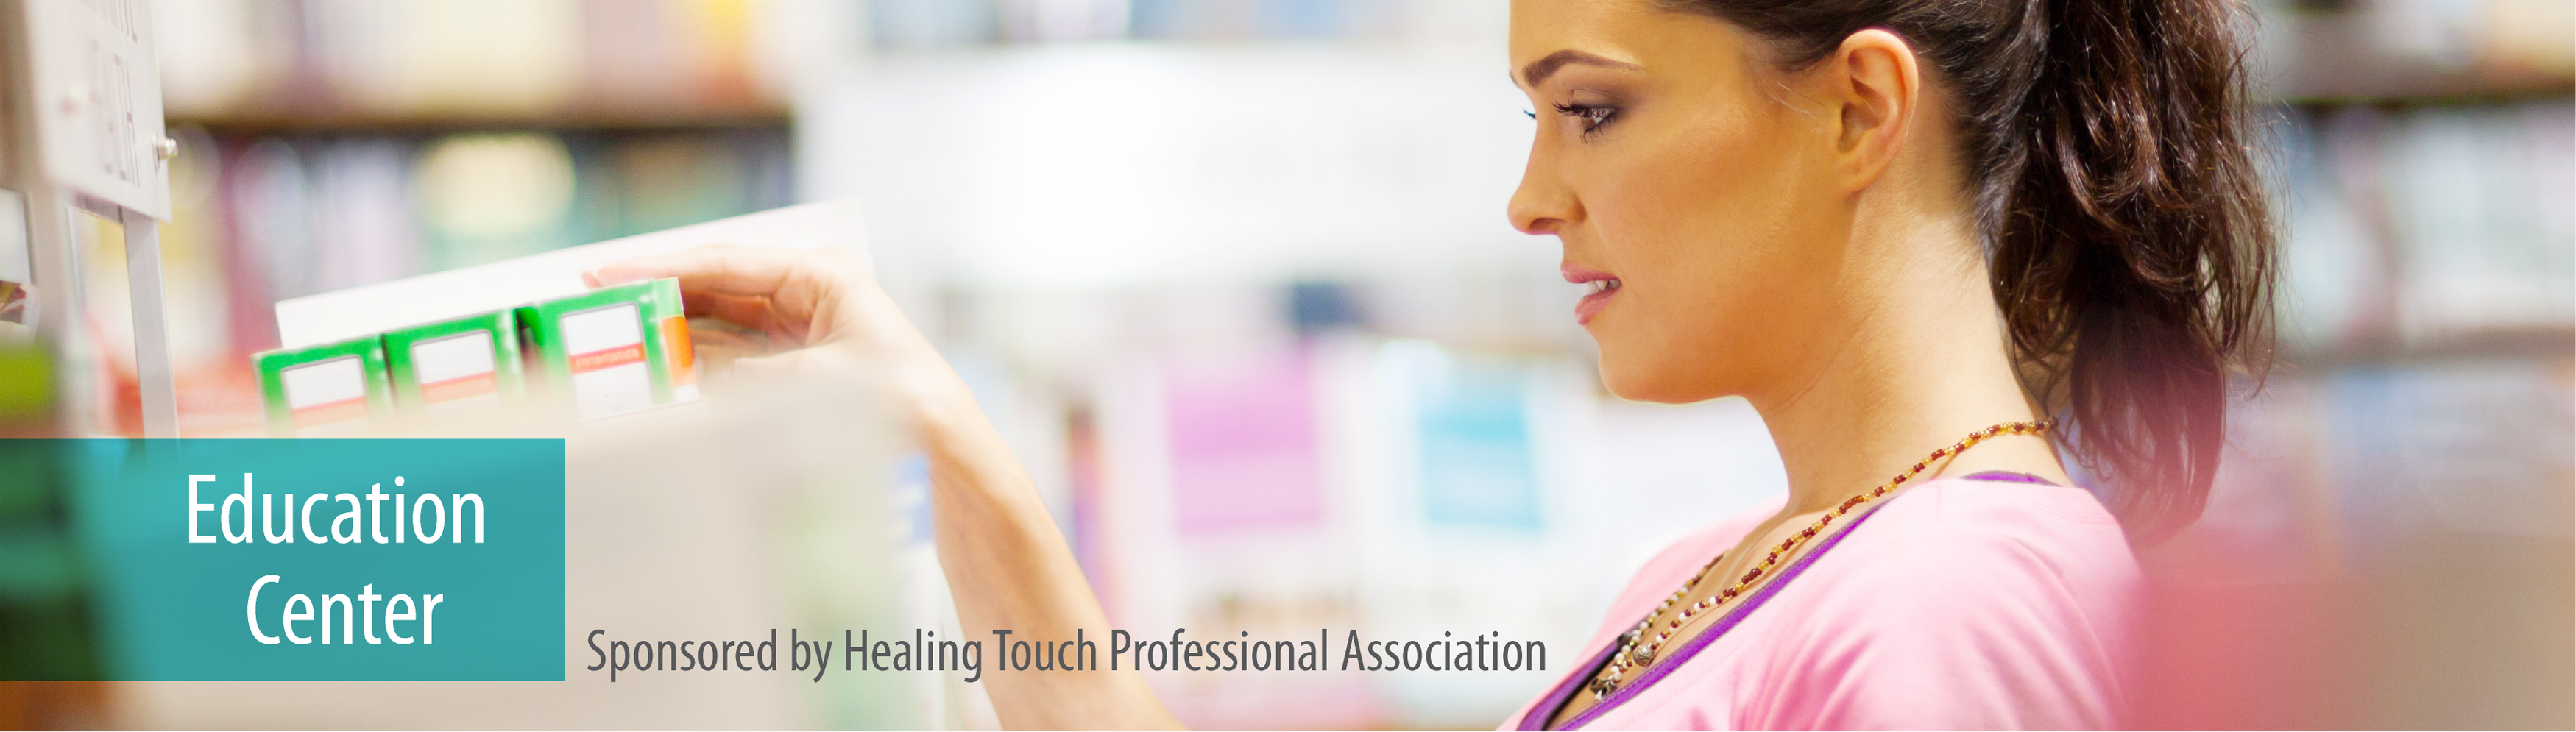 Healing Touch Professional Association - Education Center